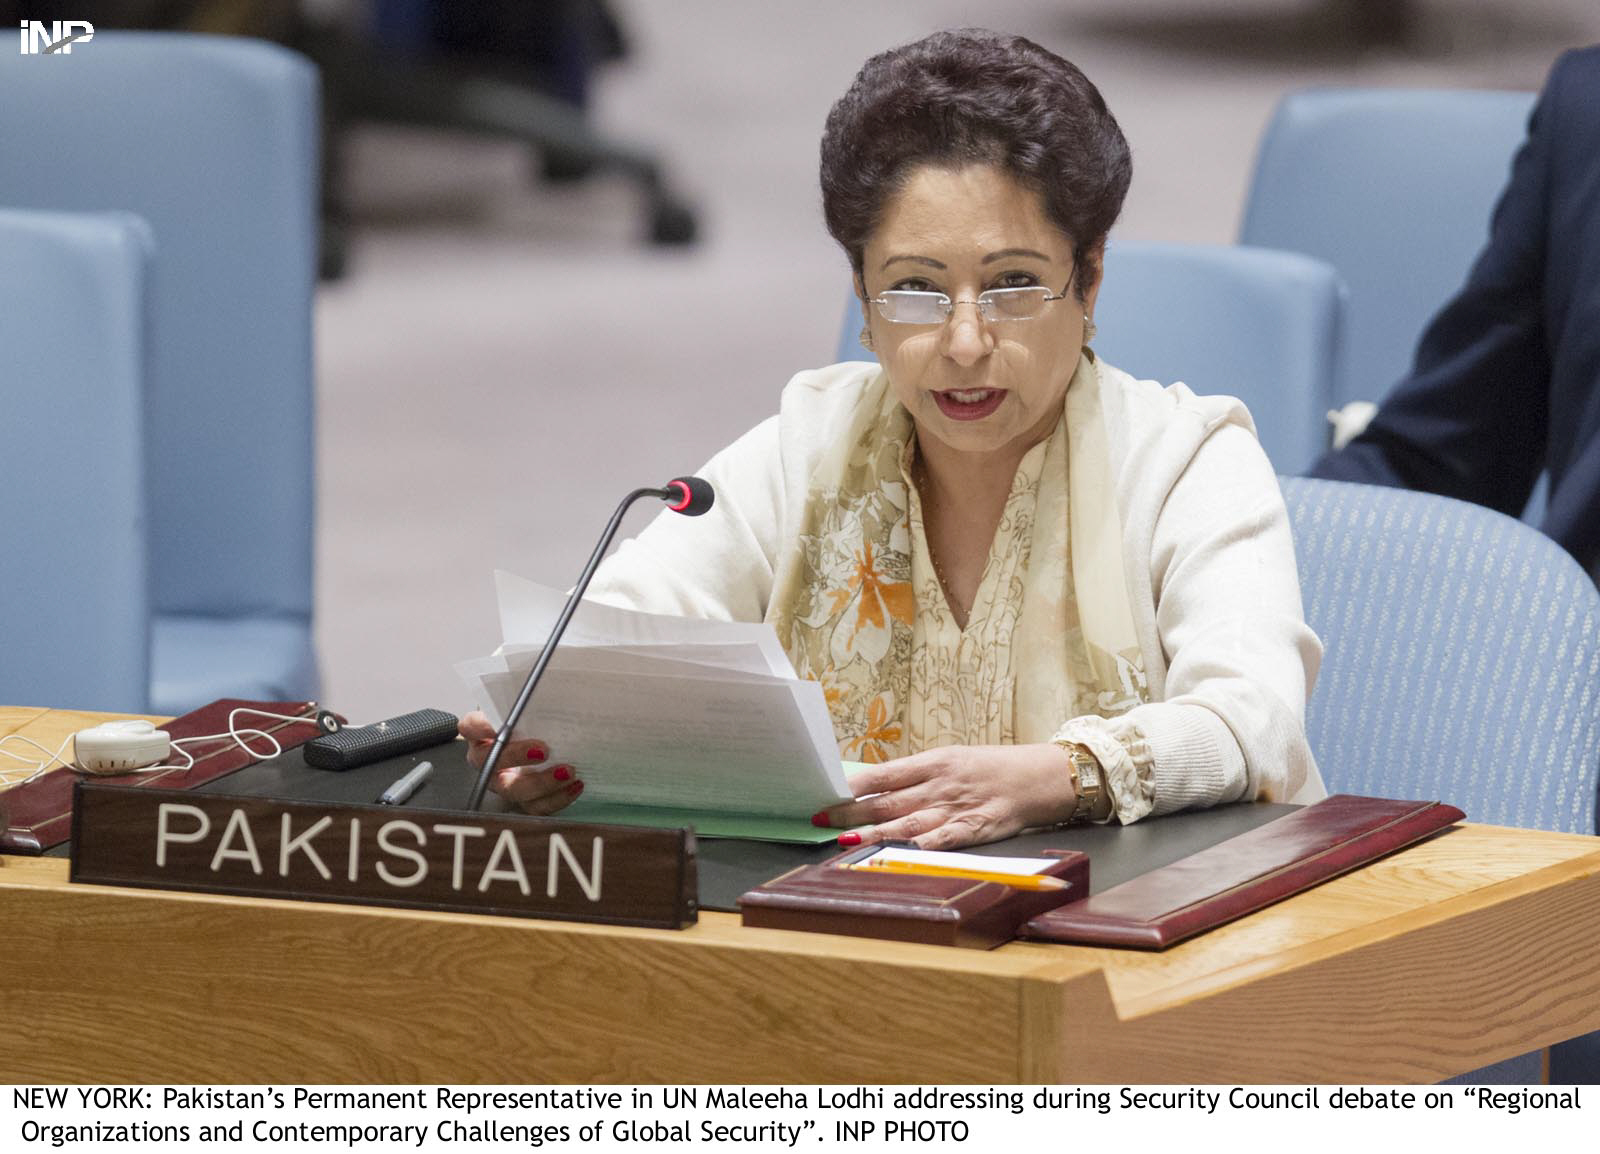 Maleeha Lodhi says demand defies 21st century principle of achieving representation through periodic elections. PHOTO: INP